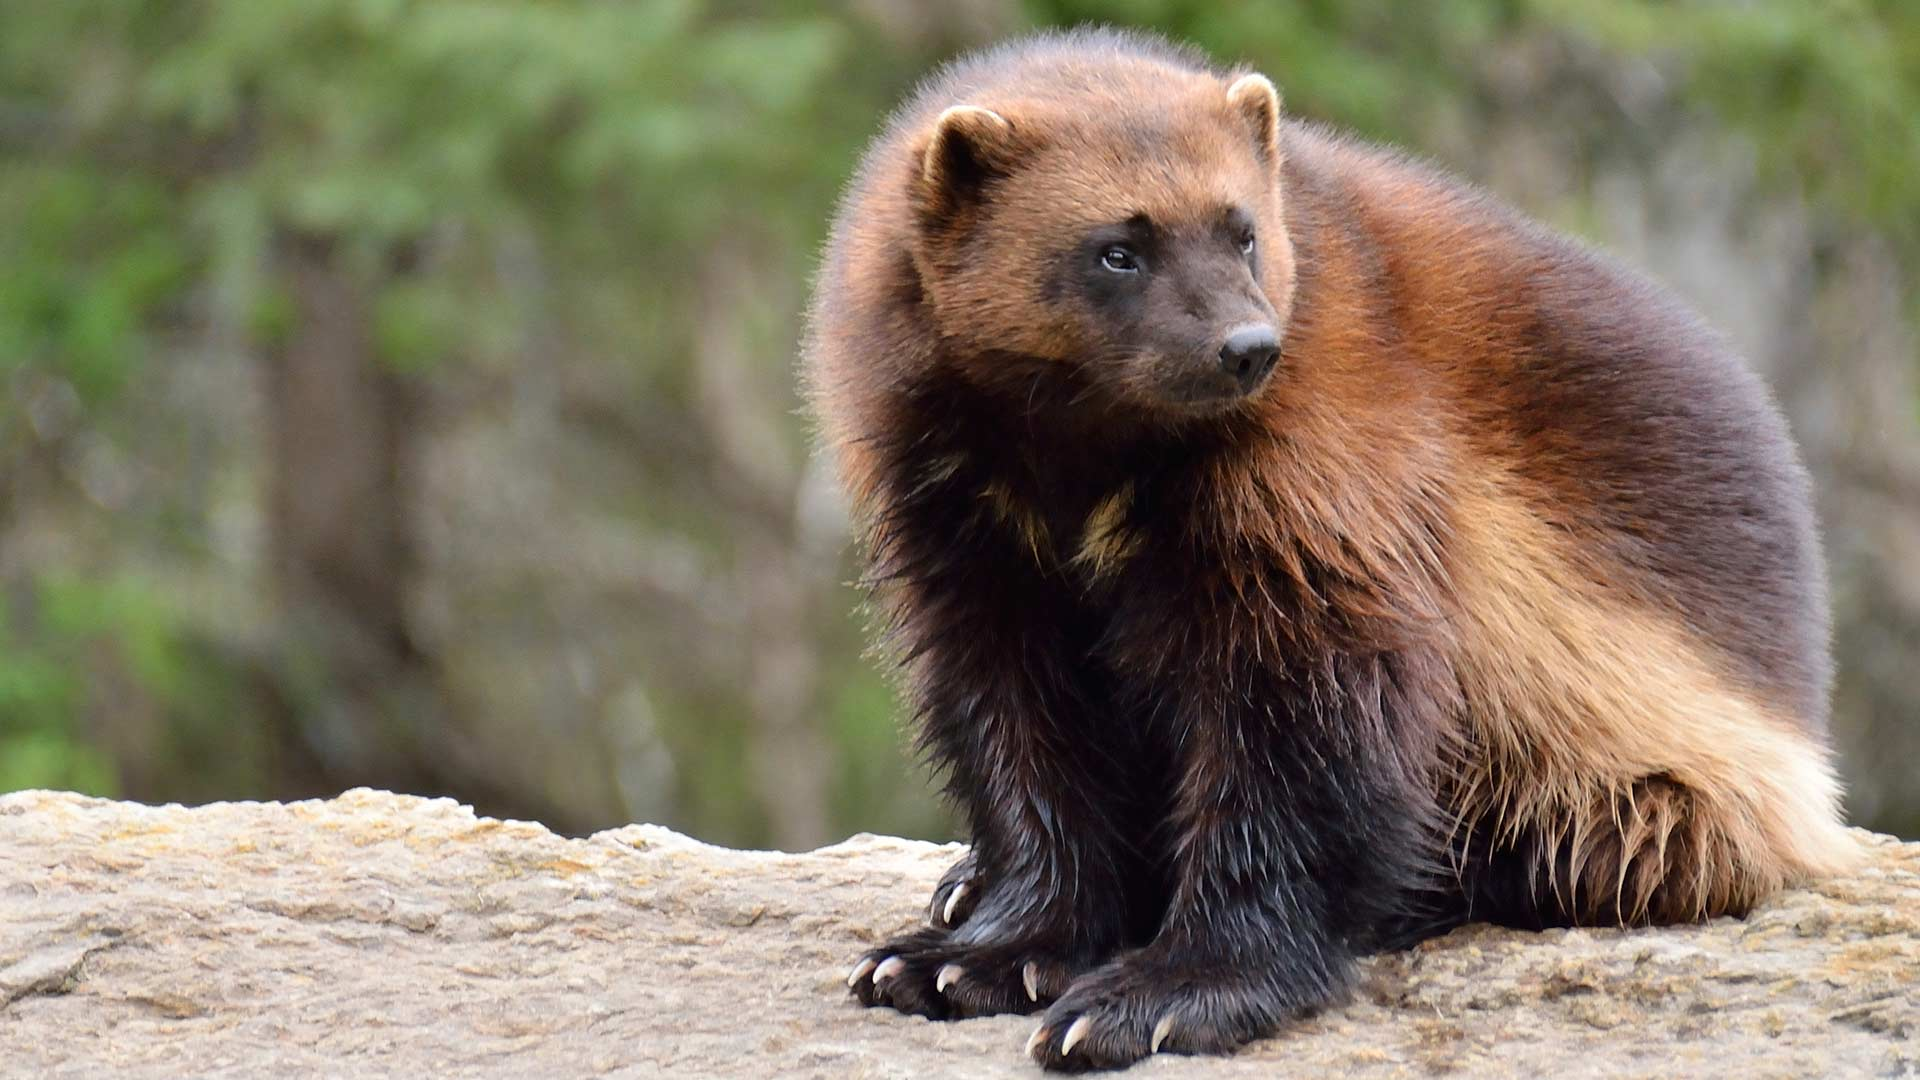 Petition to help protect Wolverines